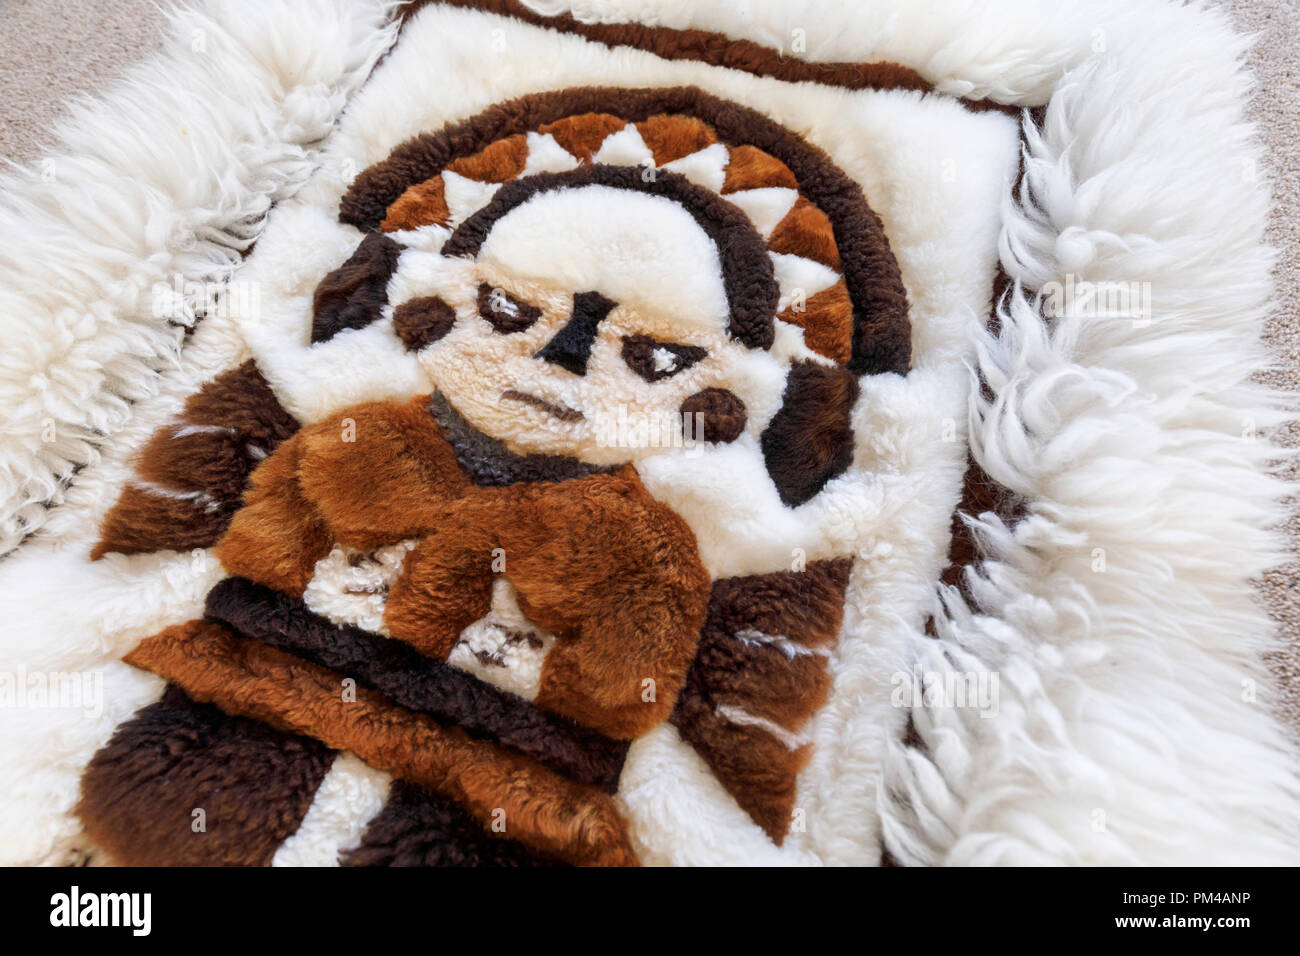 Typical Andean craftsmanship and souvenir: a soft fluffy patchwork rug hand crafted from pieces of alpaca skin to form a picture of a pre-Inca figure - Stock Image